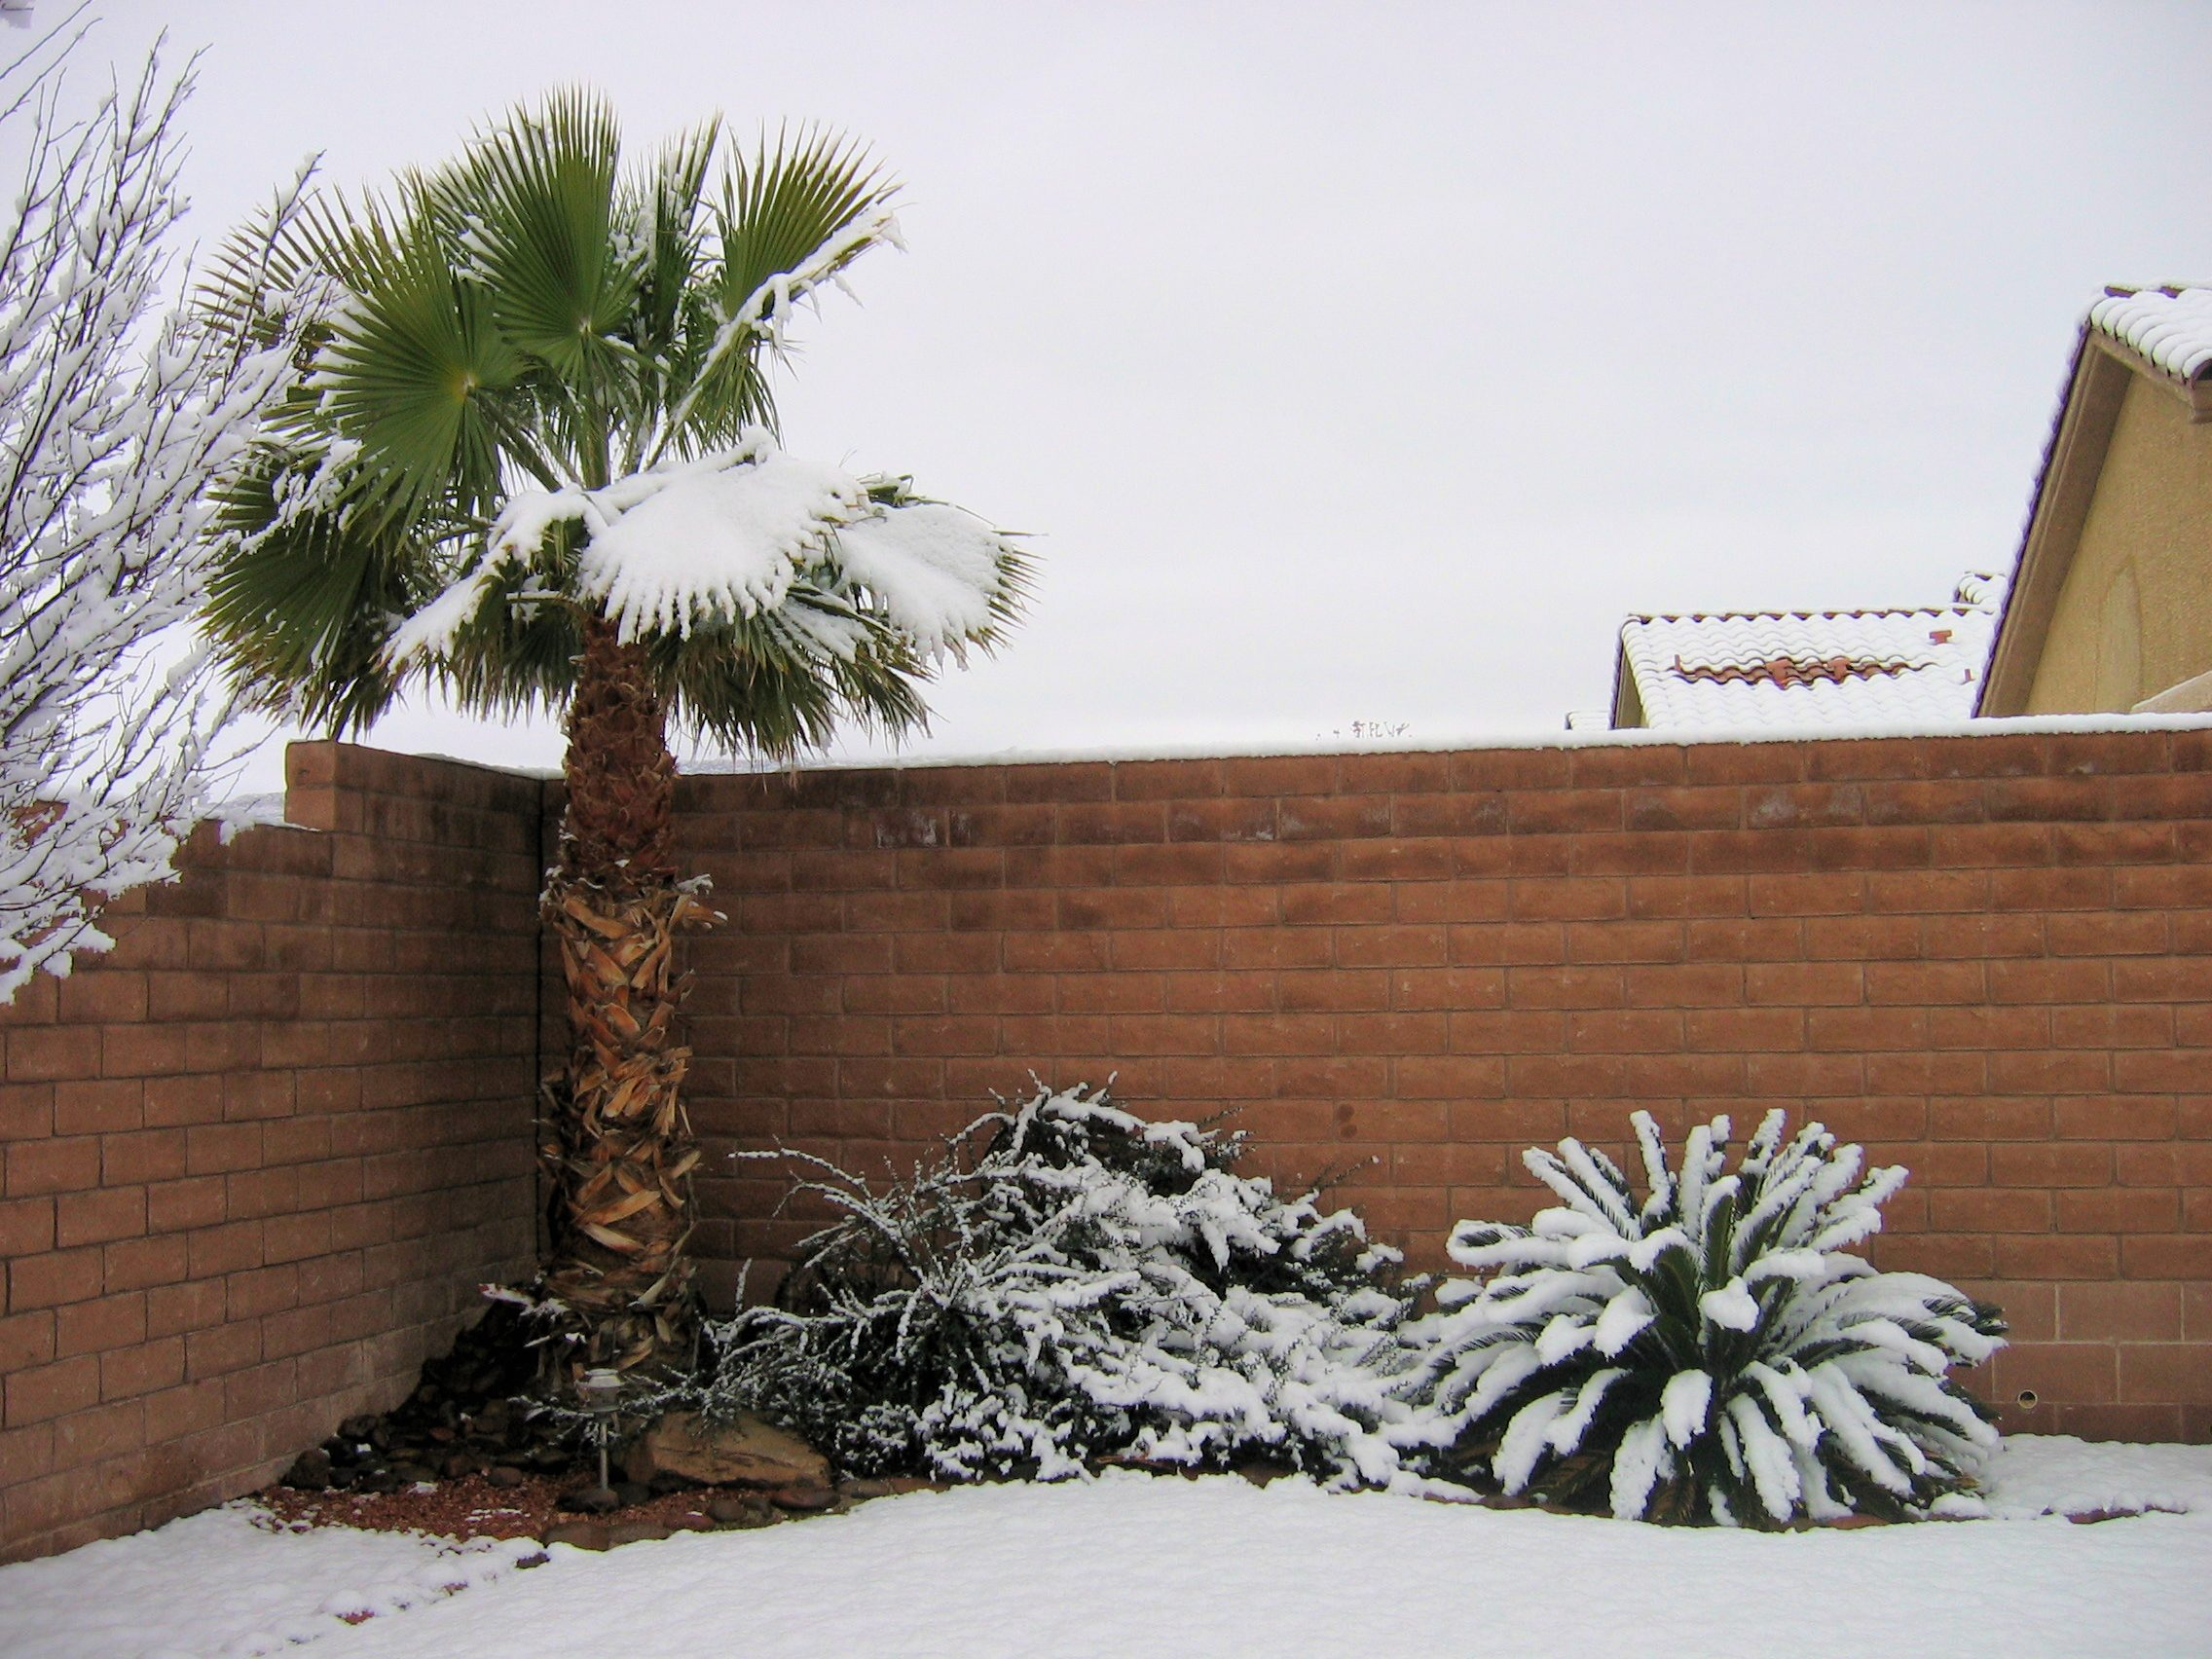 Snow in Las Vegas, January 2011